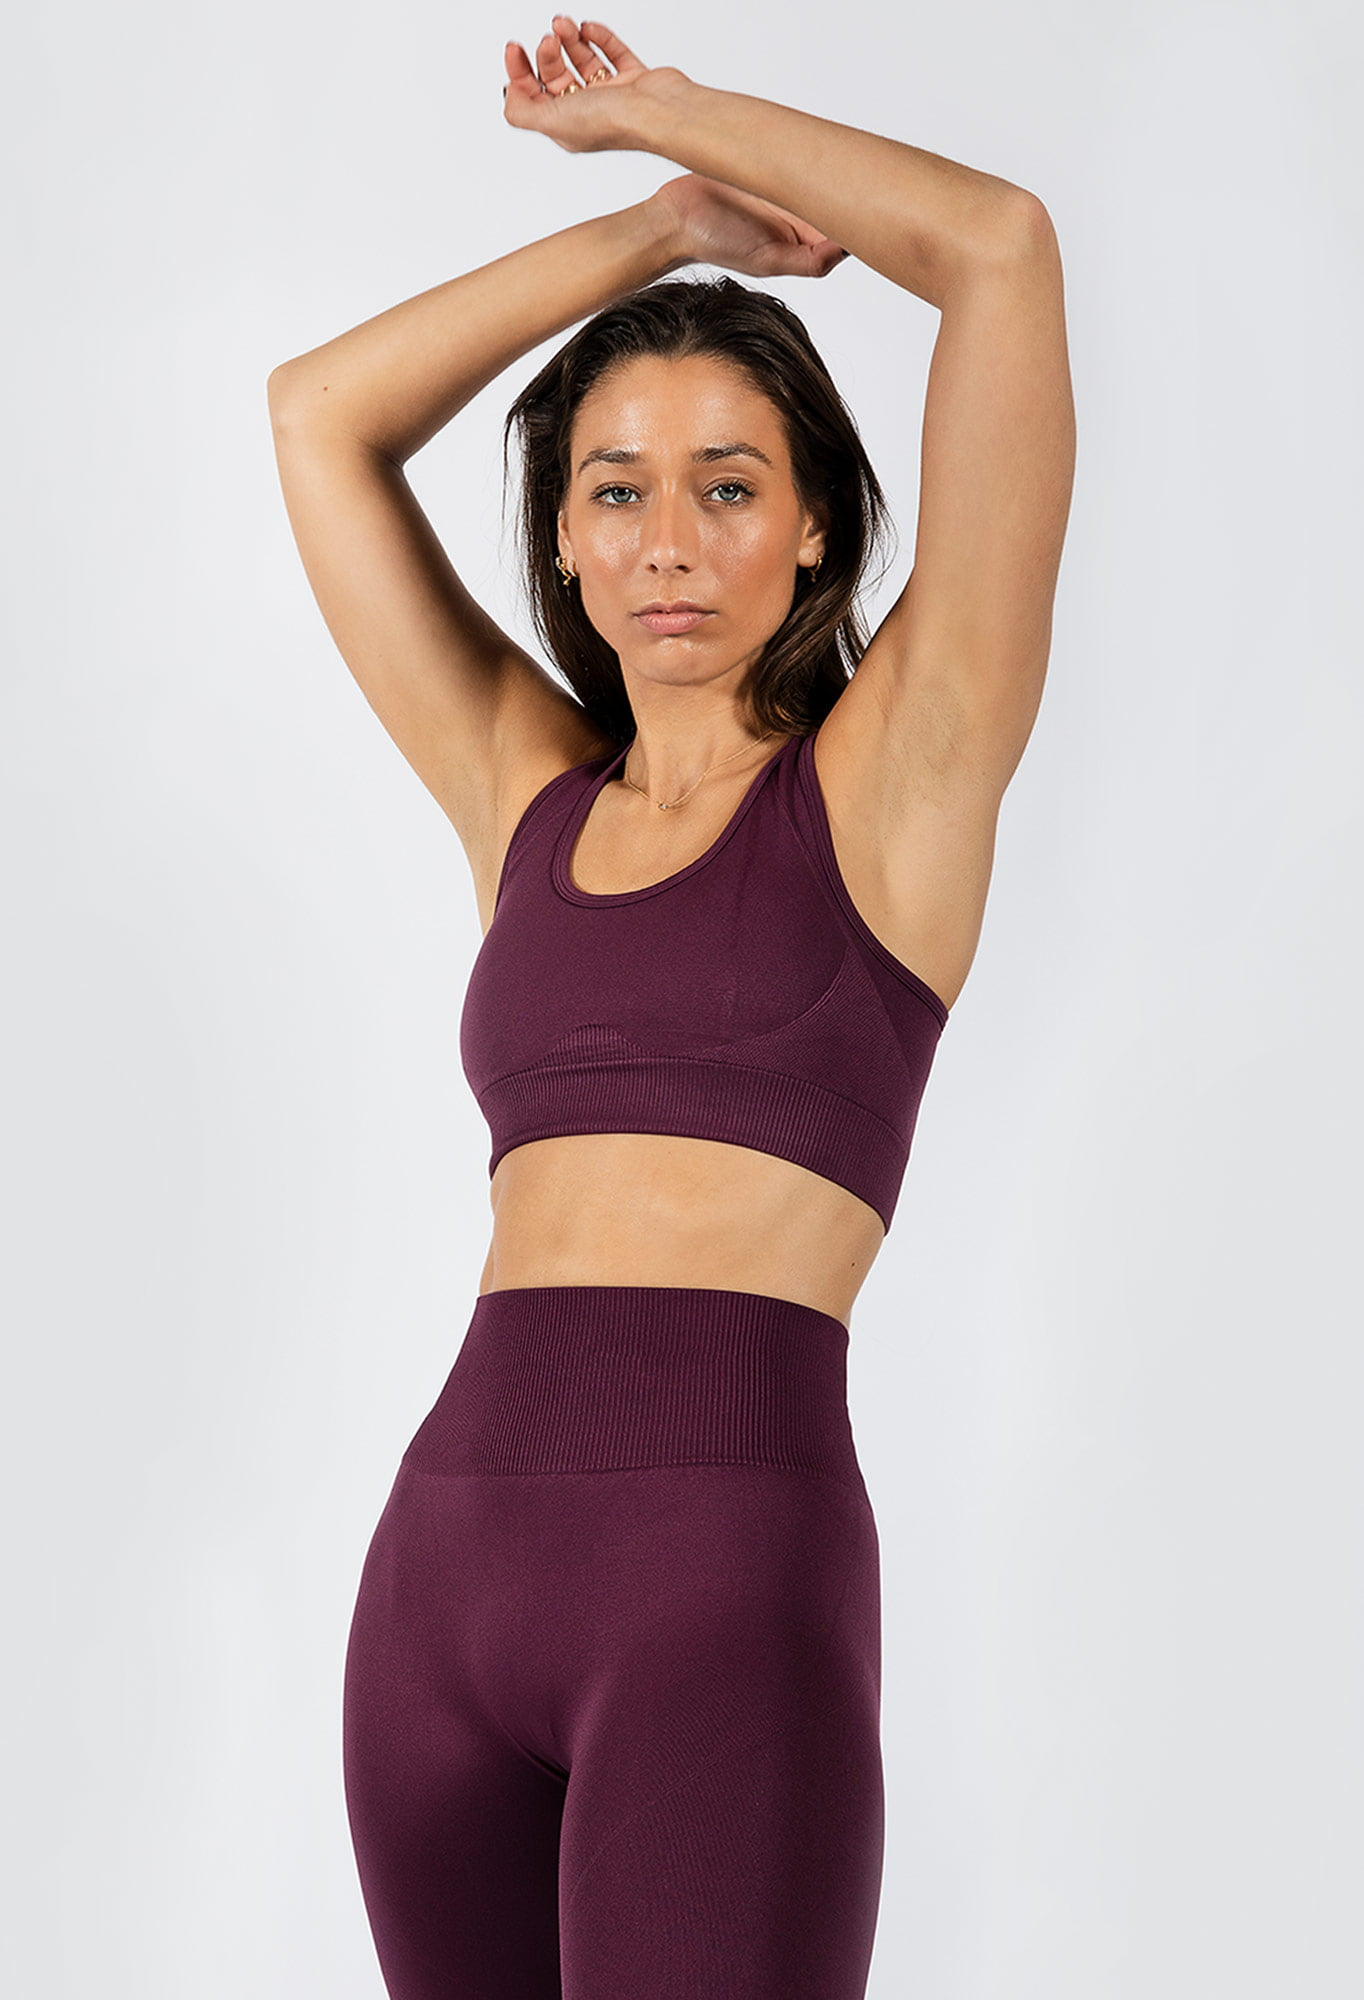 Muki women's sports bra in grape colour